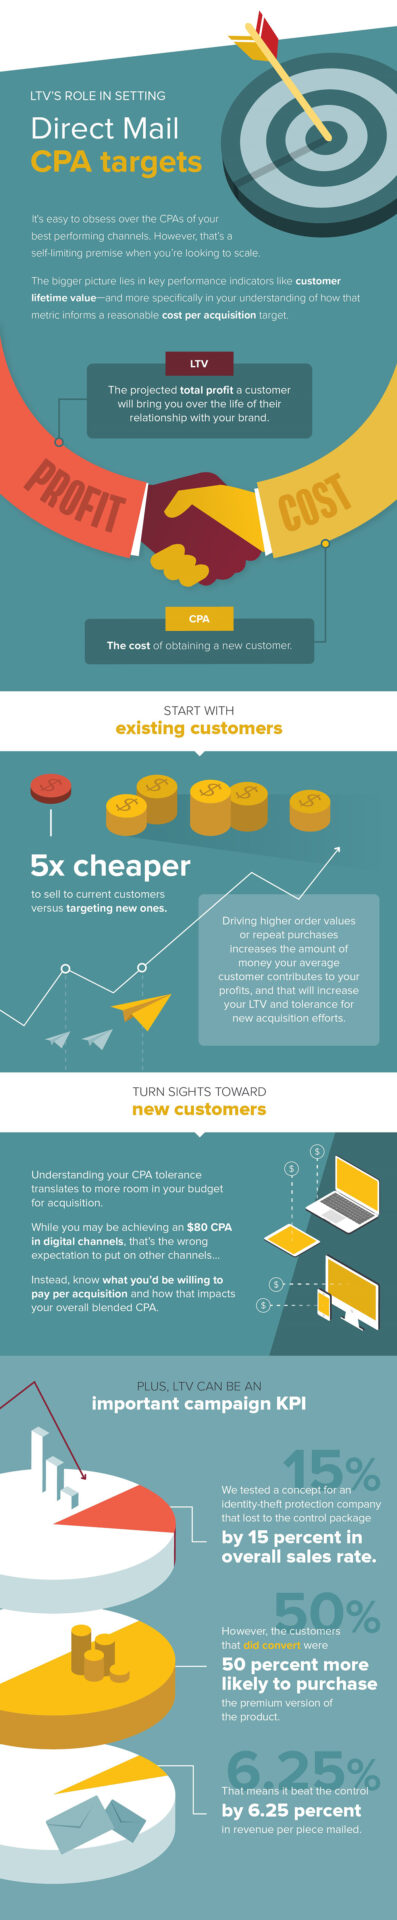 Infographic image depicting the relationship between customer lifetime value (LTV) and cost per acquisition (CPA) as it relates to the direct mail channel.